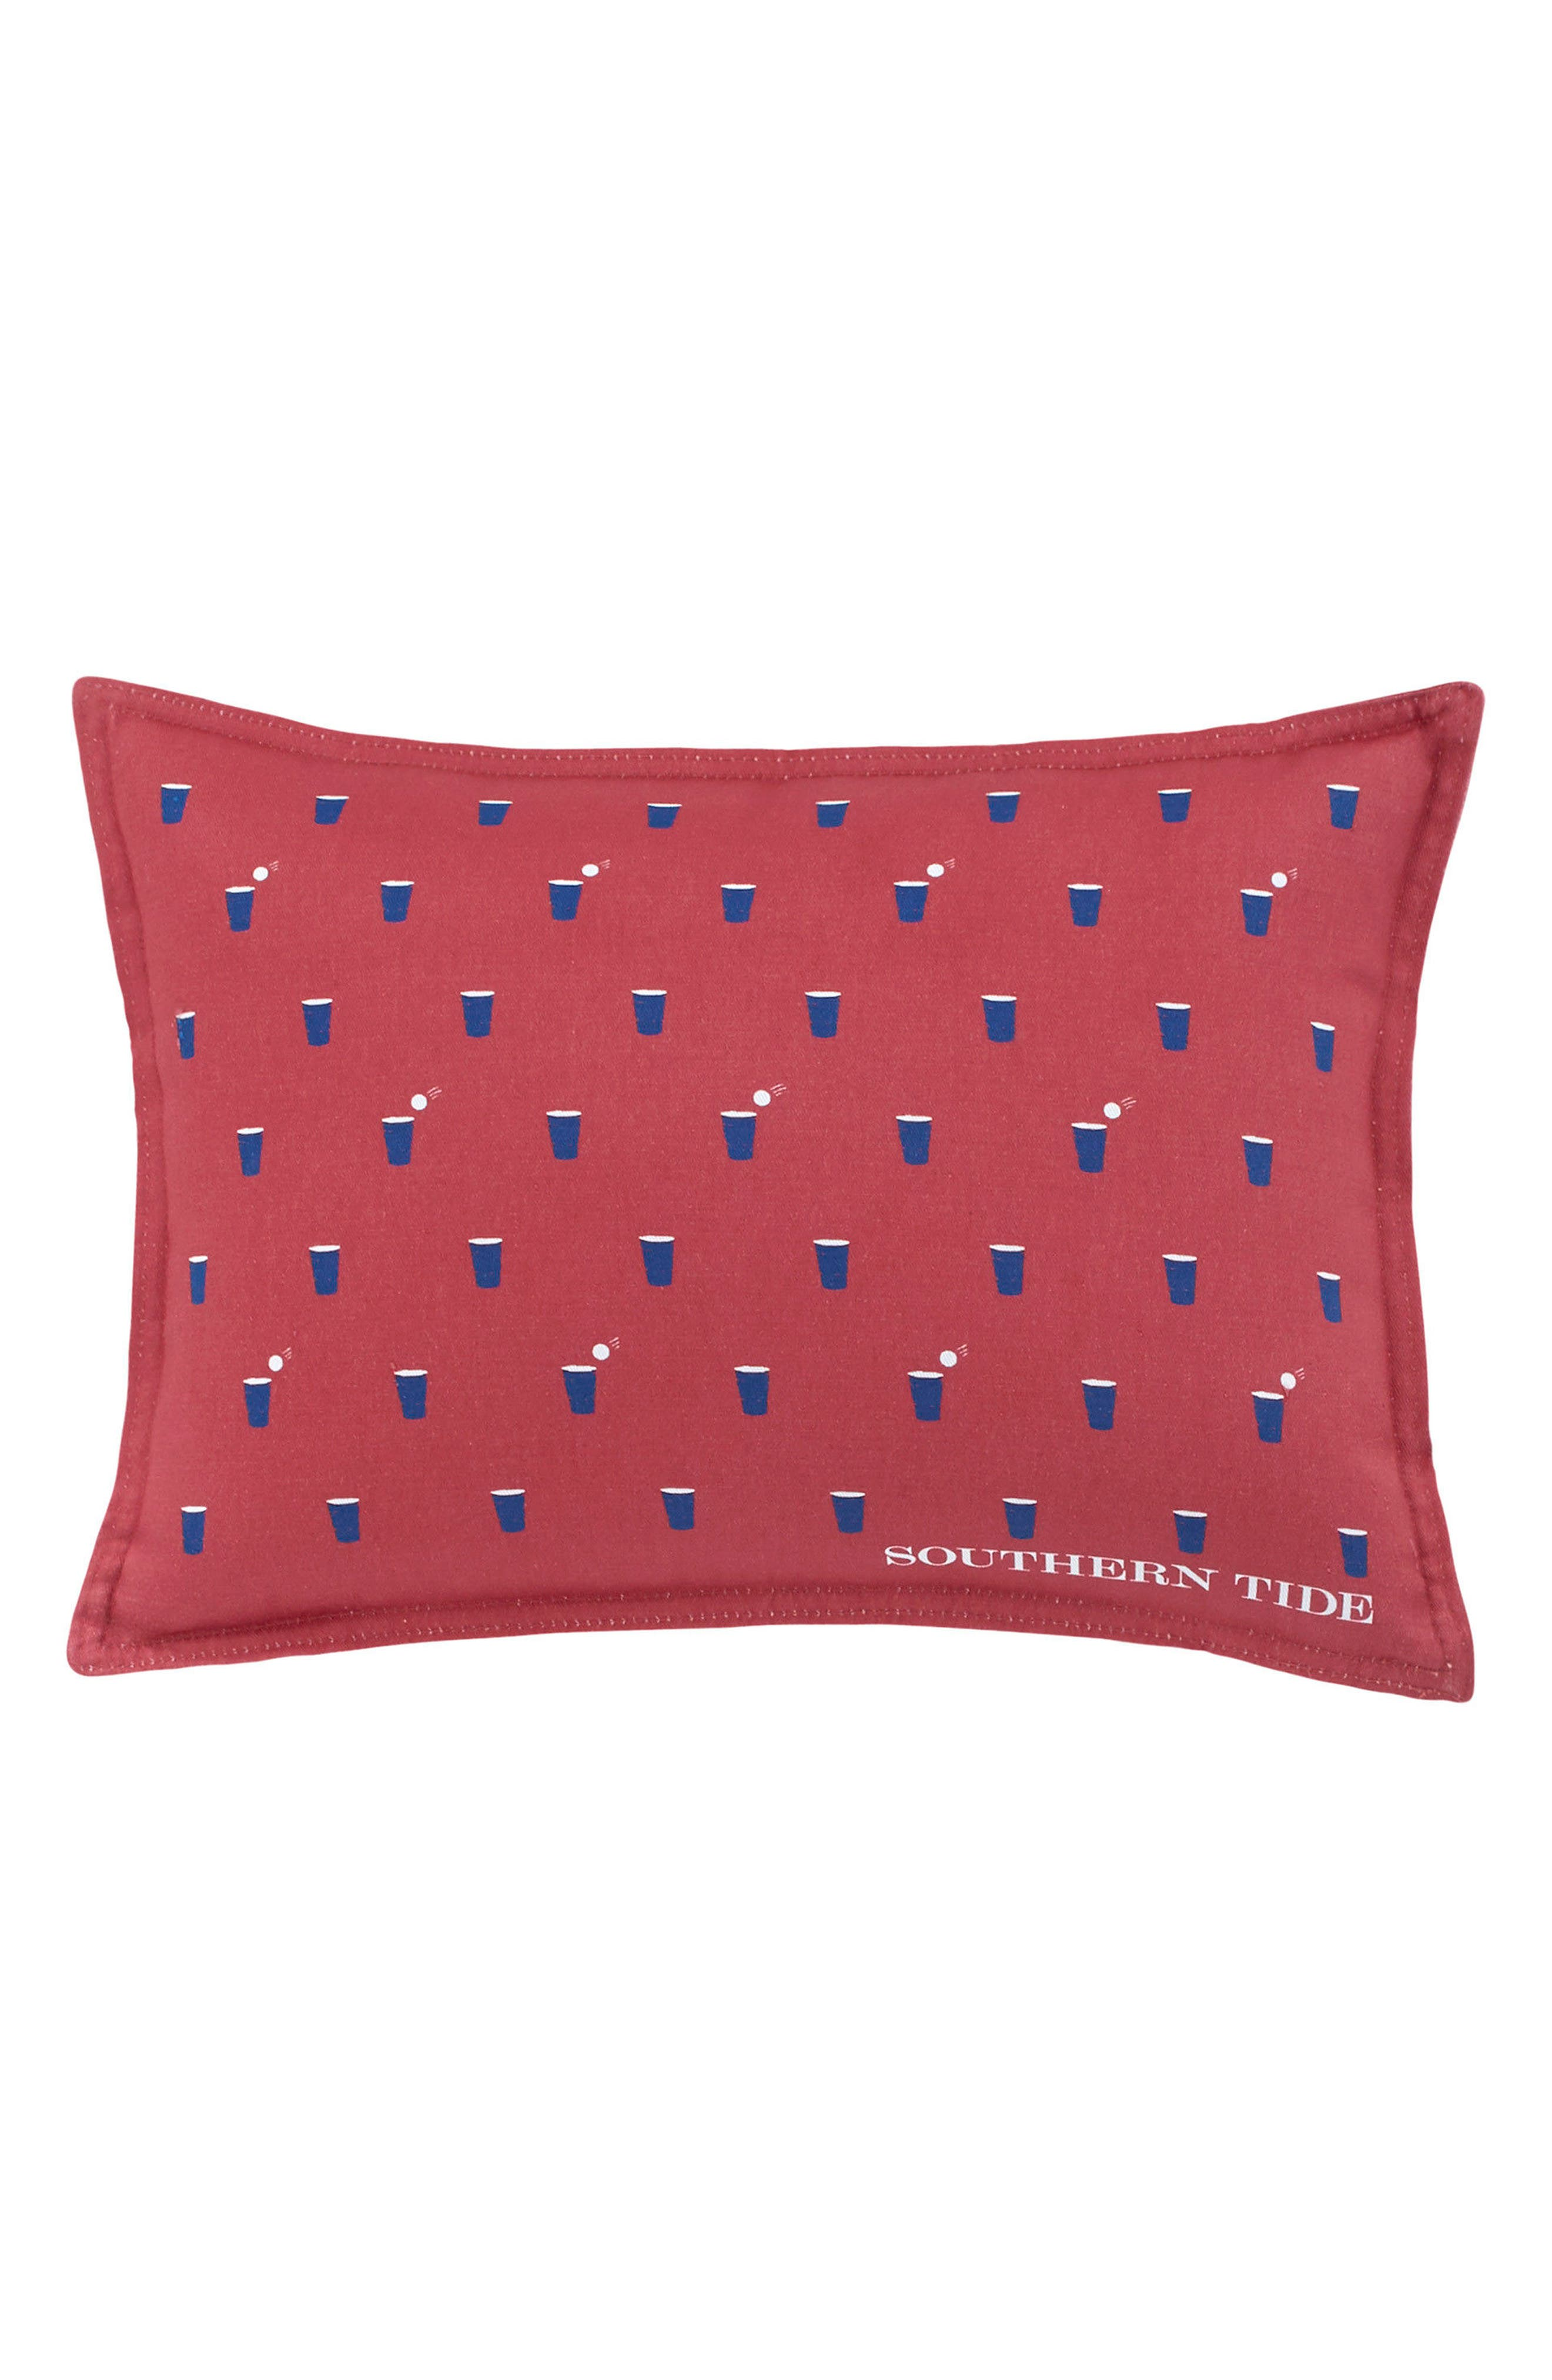 Main Image - Southern Tide Skipjack Chino Happy Hour Accent Pillow